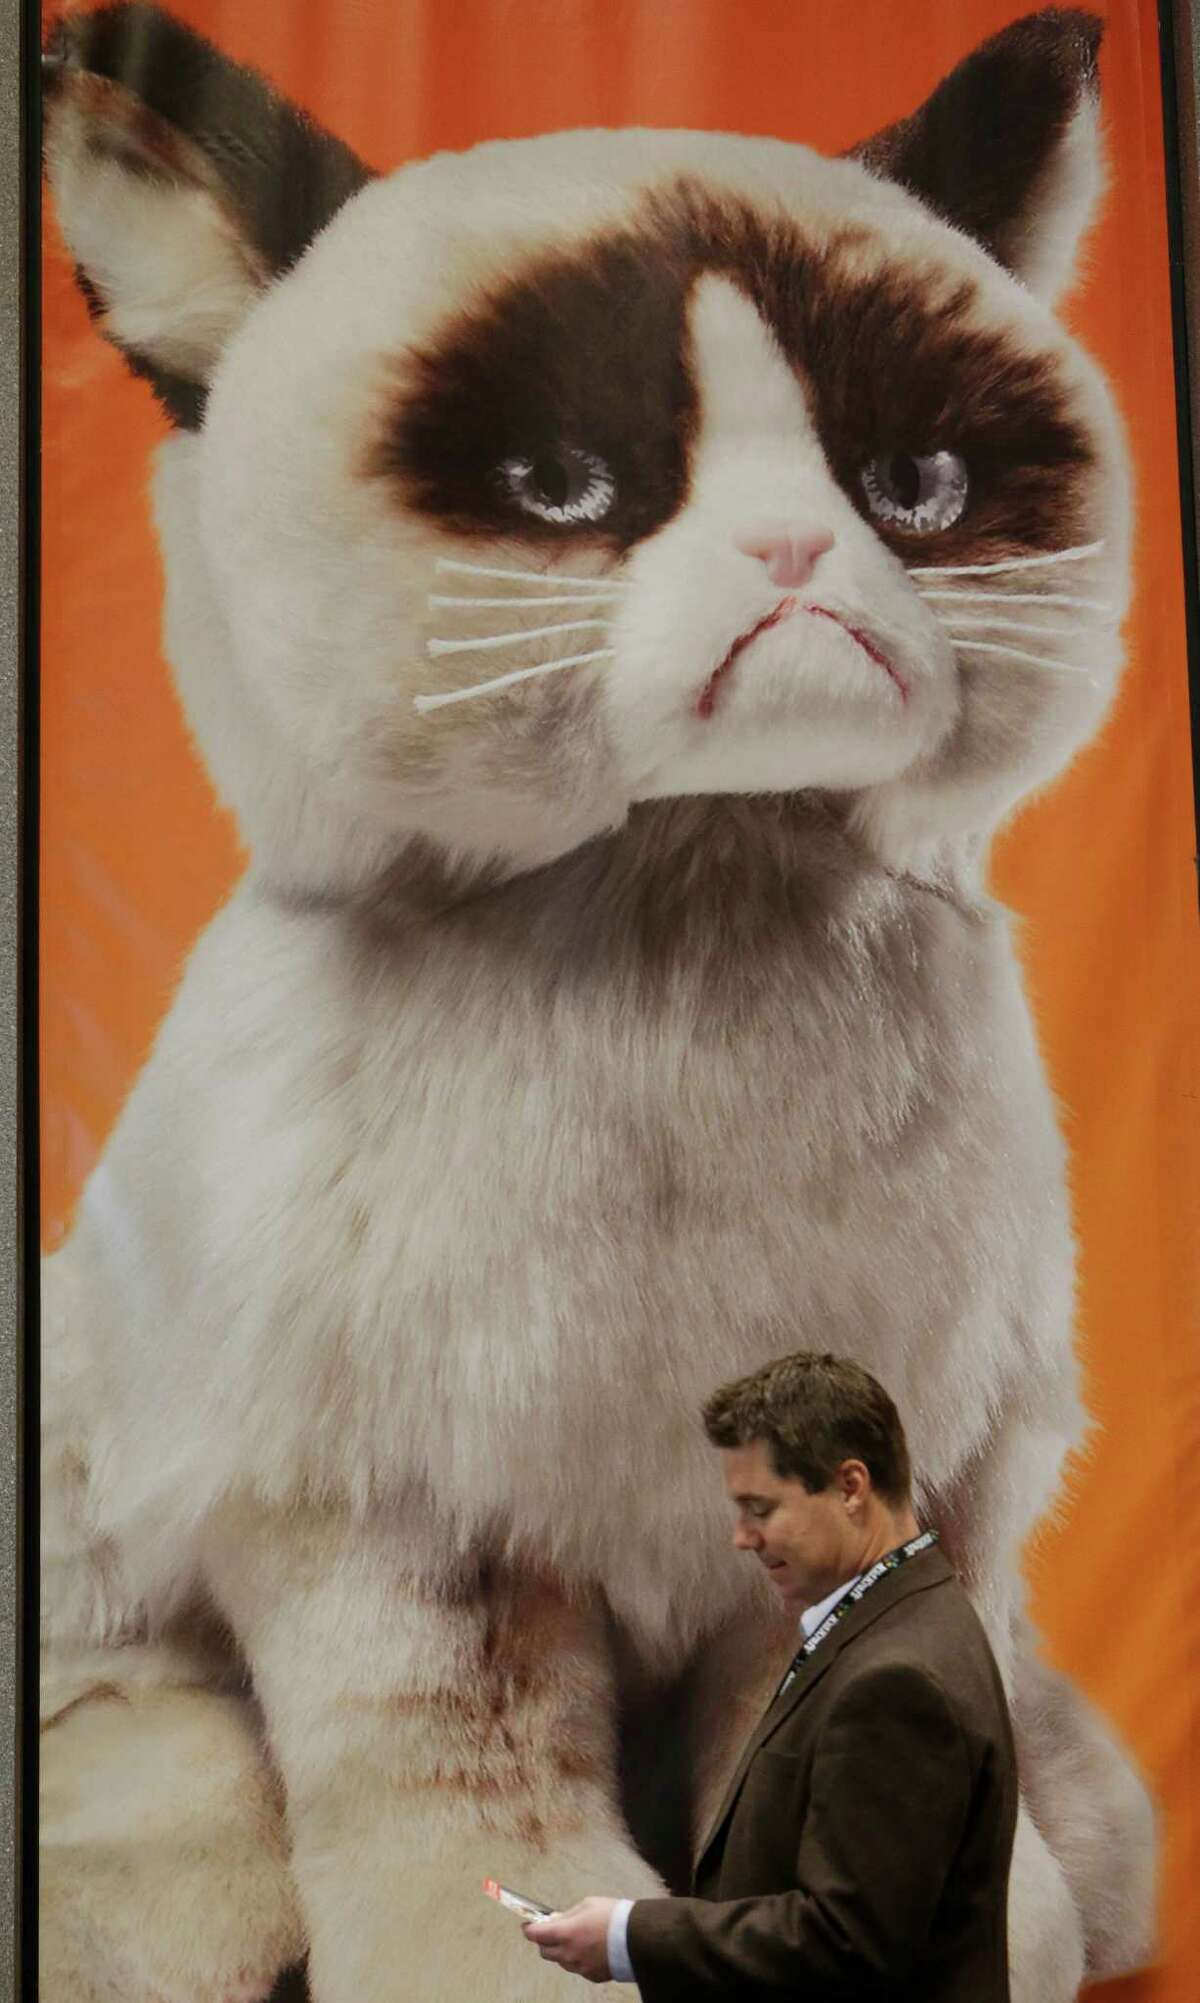 A man passes a Grumpy the Cat display near the Gund booth at Toy Fair 2014 at the Jacob K. Javits Convention Center Sunday, Feb. 16, 2014, in New York. The 111th American International Toy Fair opened in New York Sunday. (AP Photo)